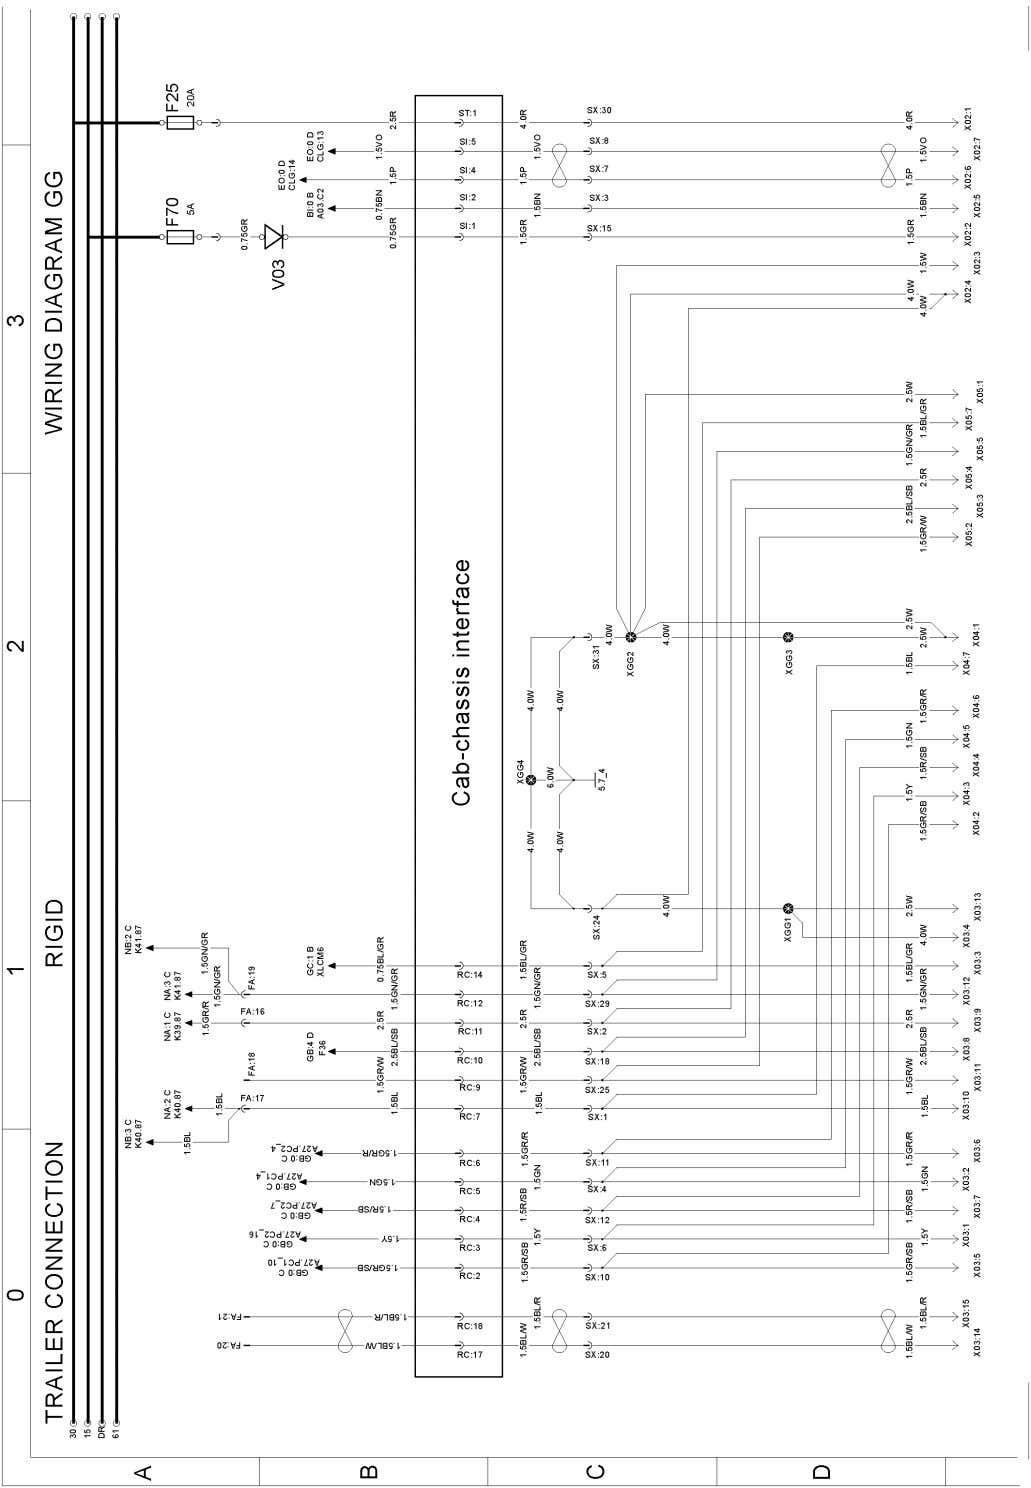 T3059896 Wiring diagram Page 67 (298)